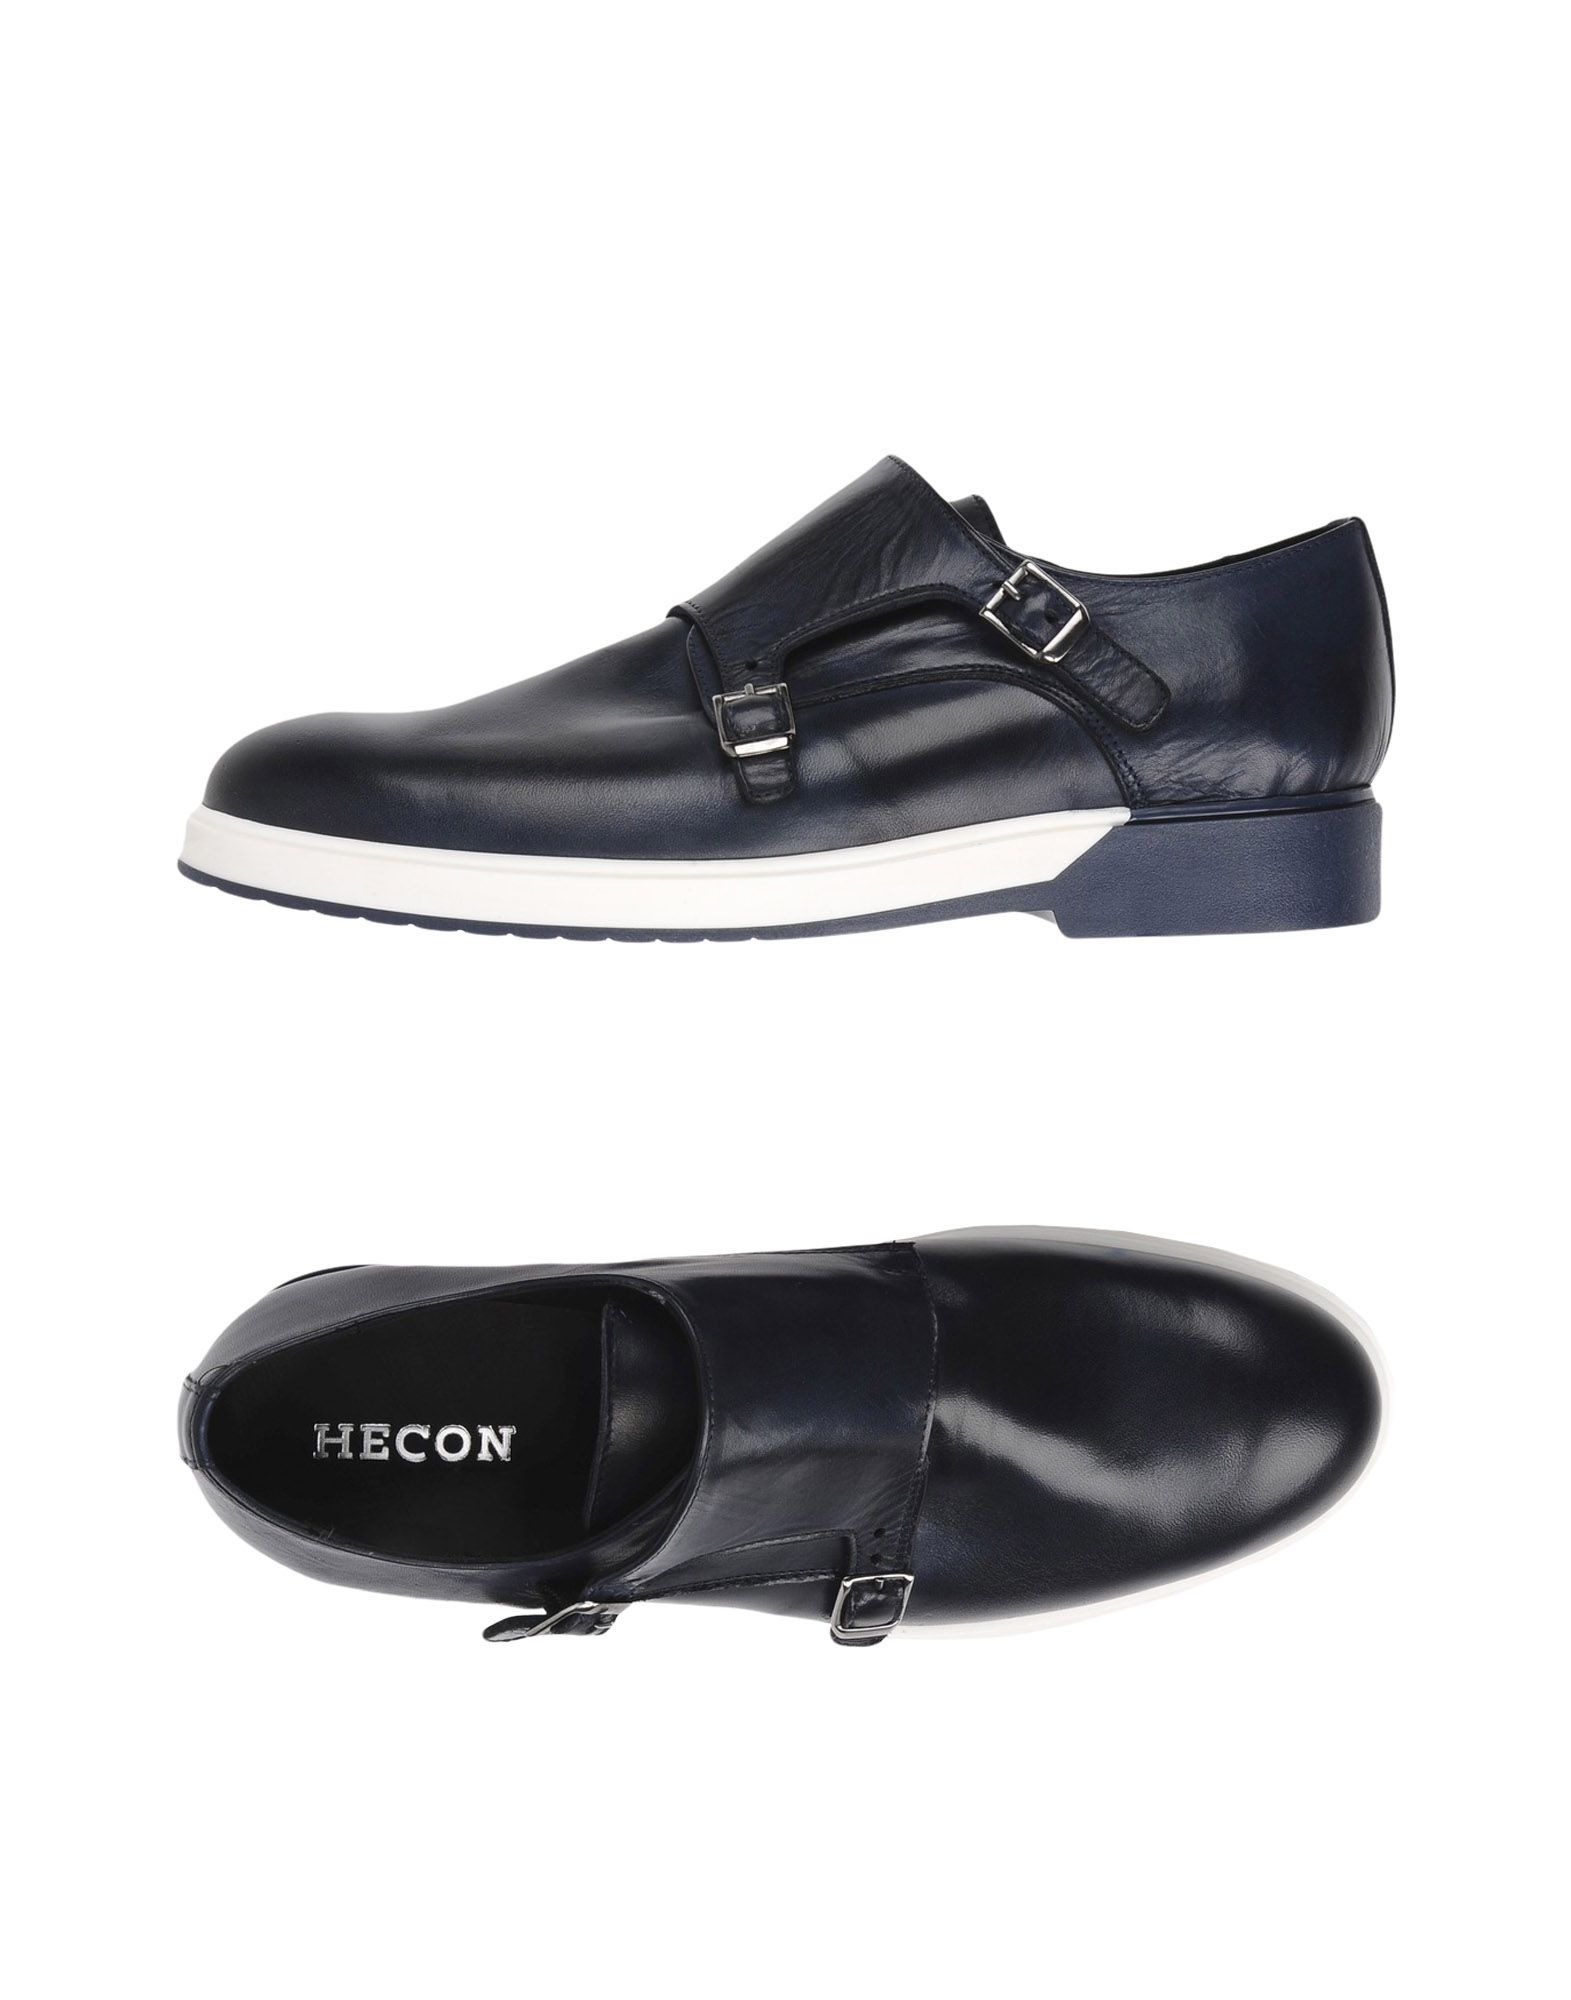 FOOTWEAR - Lace-up shoes Hecon xwN7Hn